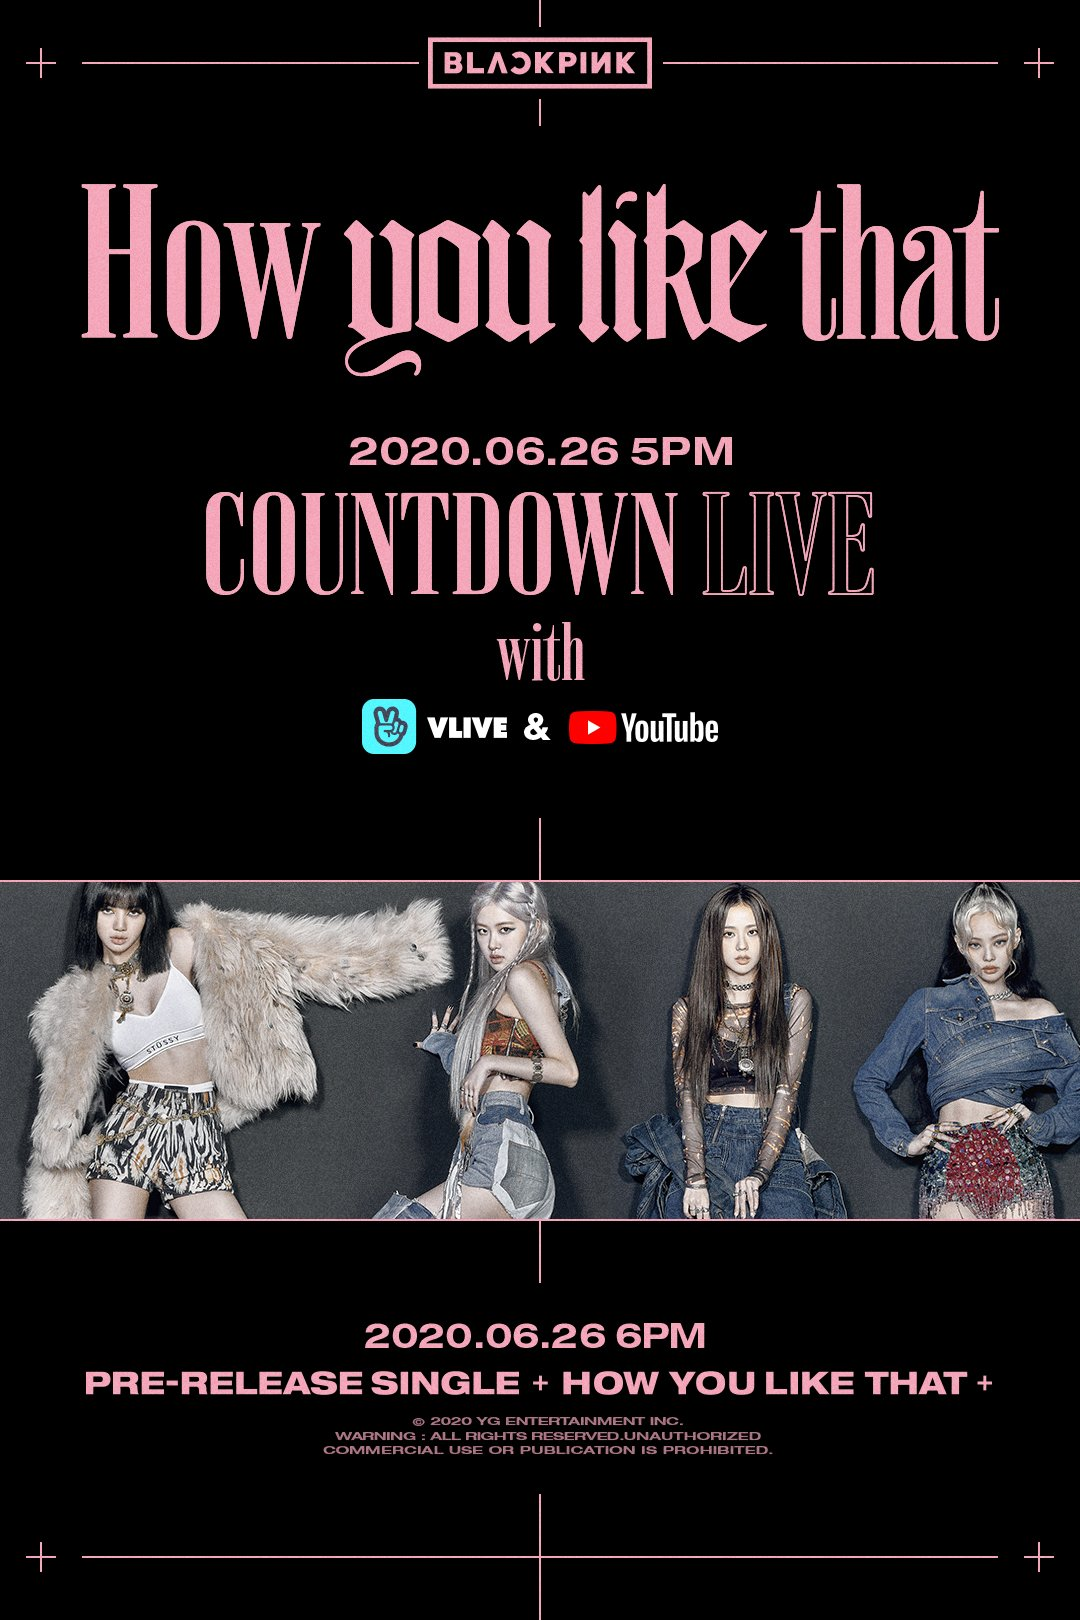 blackpink countdown live how you like that